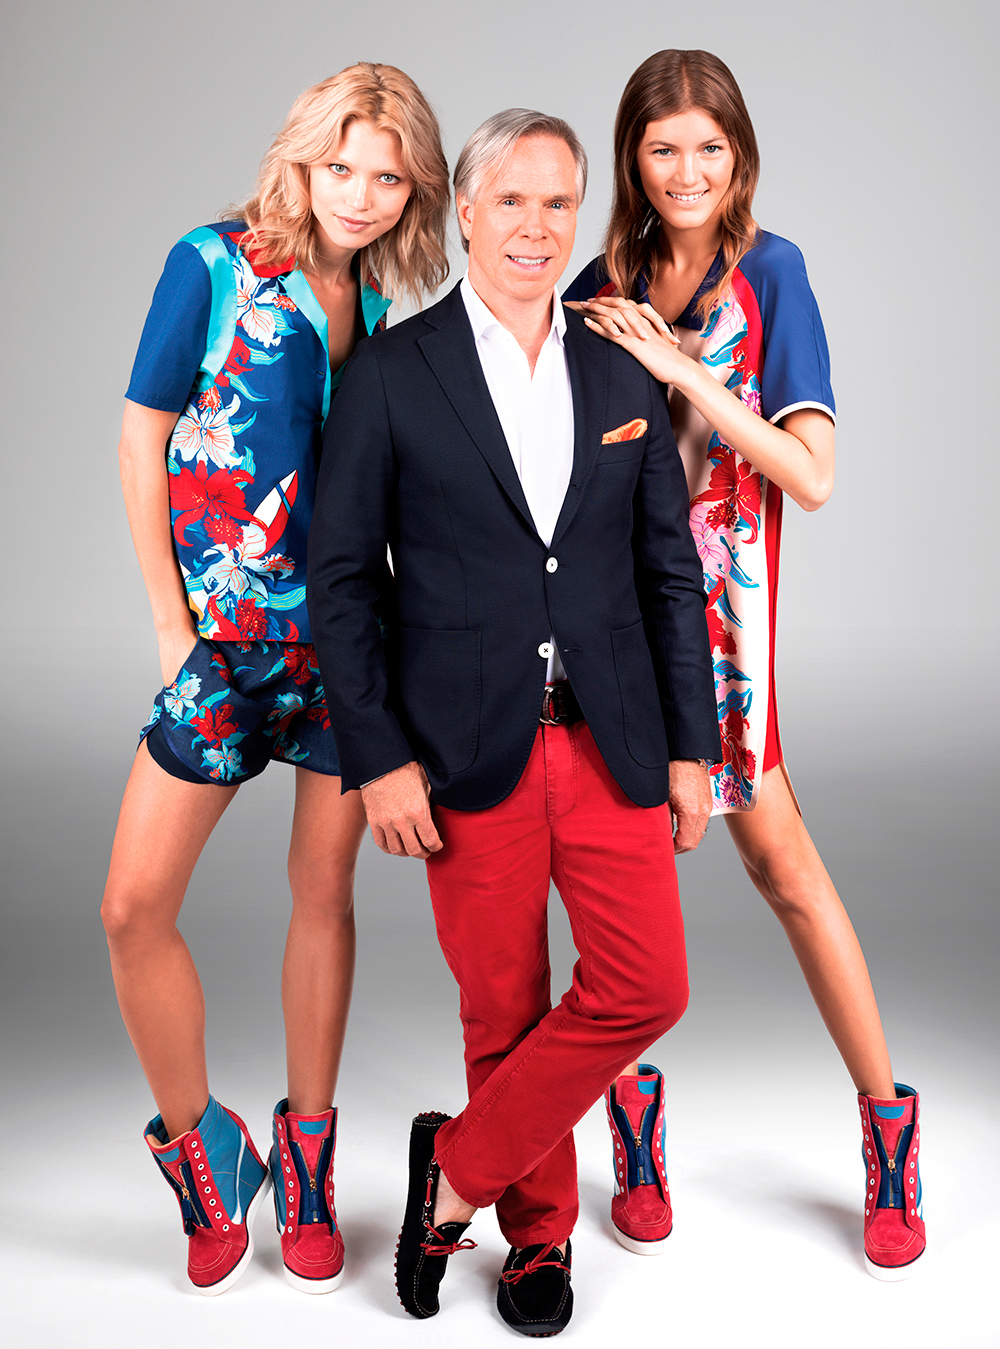 Designer Tommy Hilfiger and his models